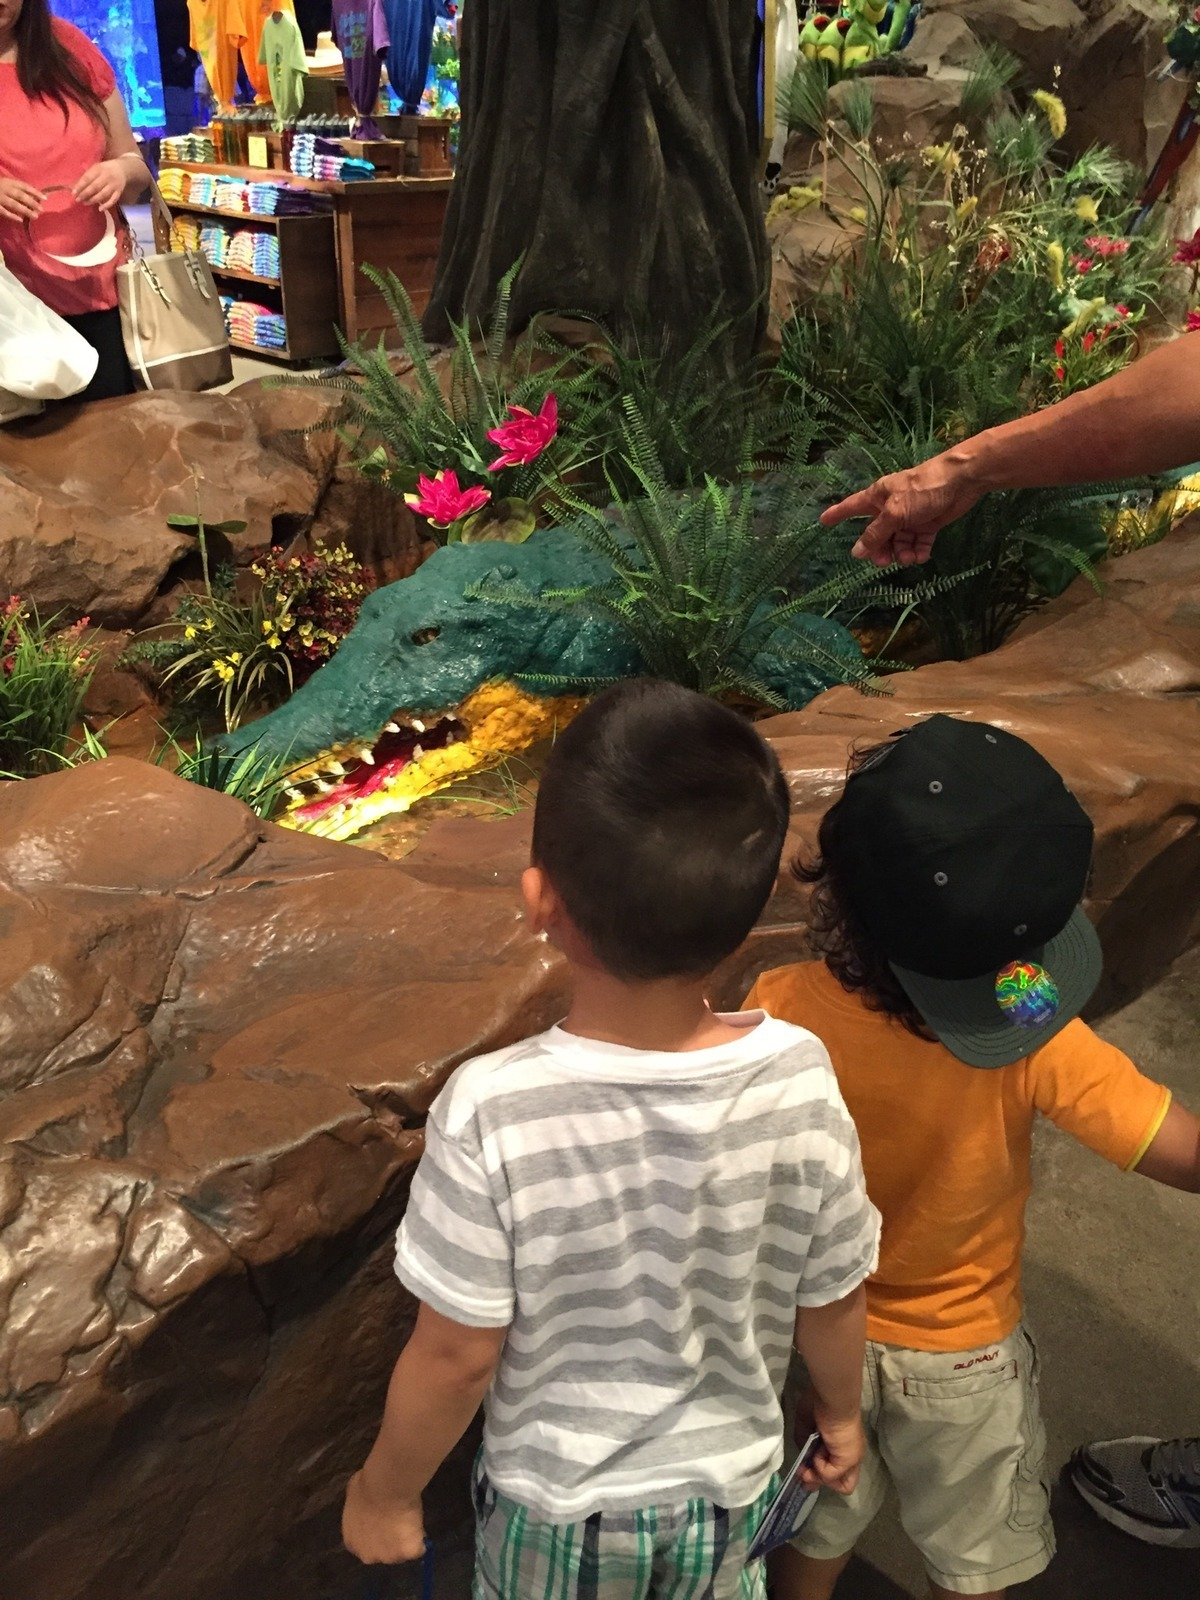 Rainforest Cafe In Auburn Hills, Michigan